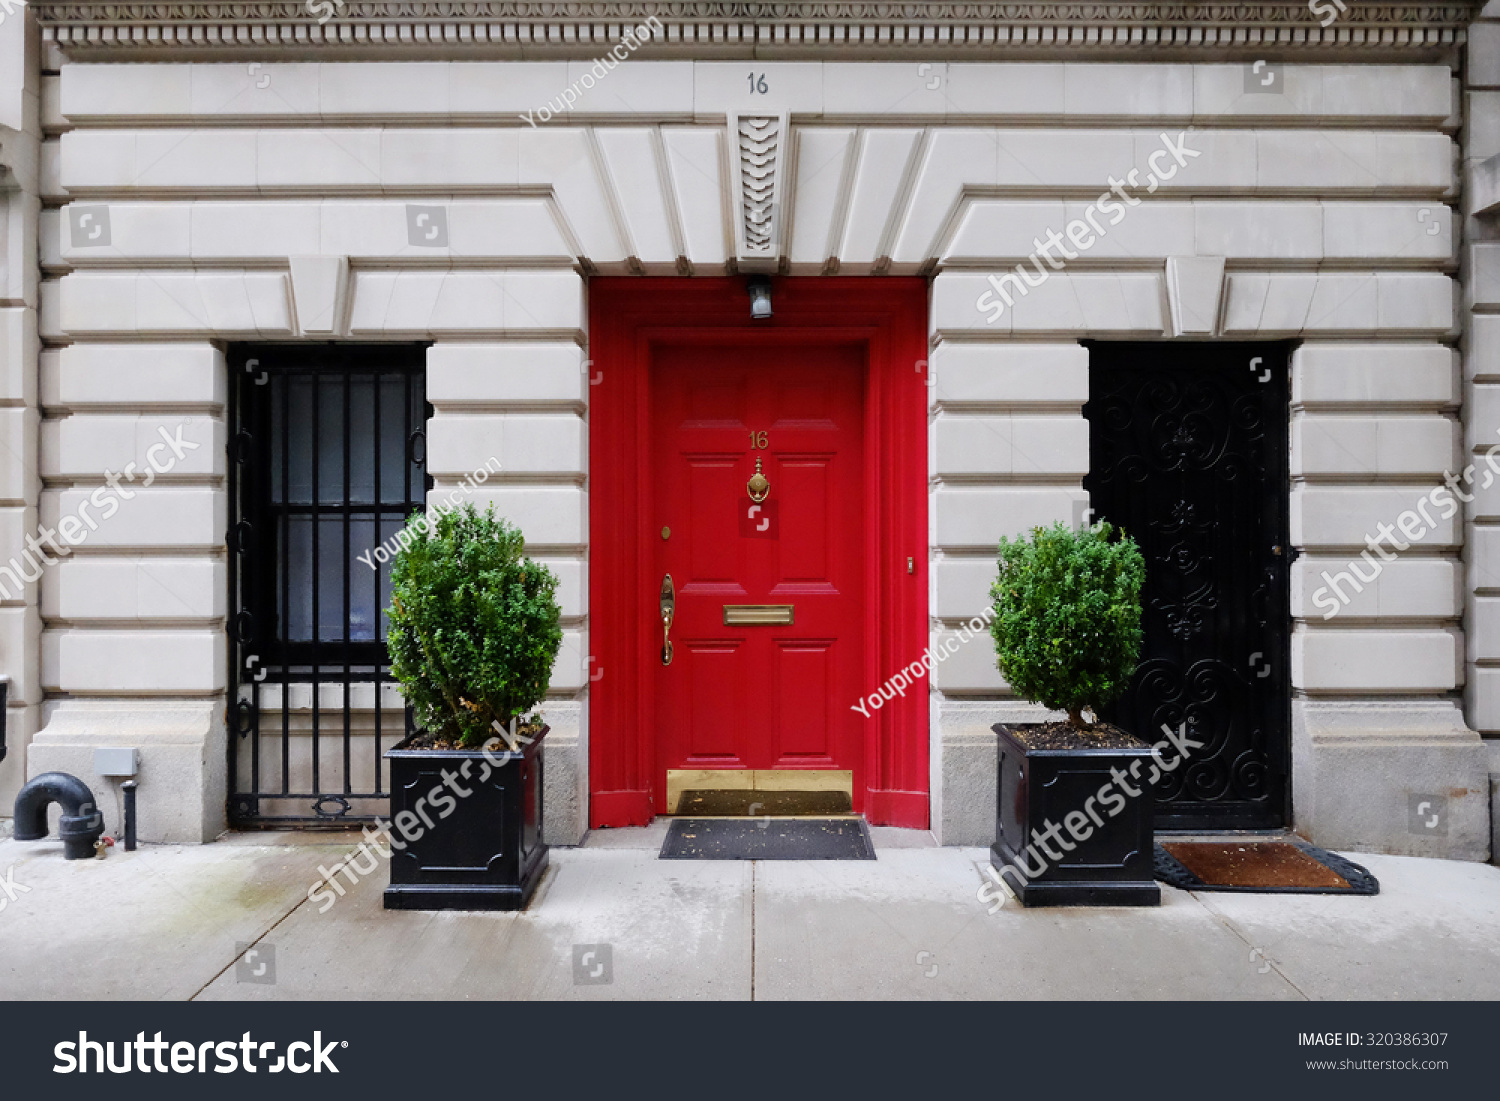 City Apartment Building Entrance beautiful building entrance red door manhattan stock photo